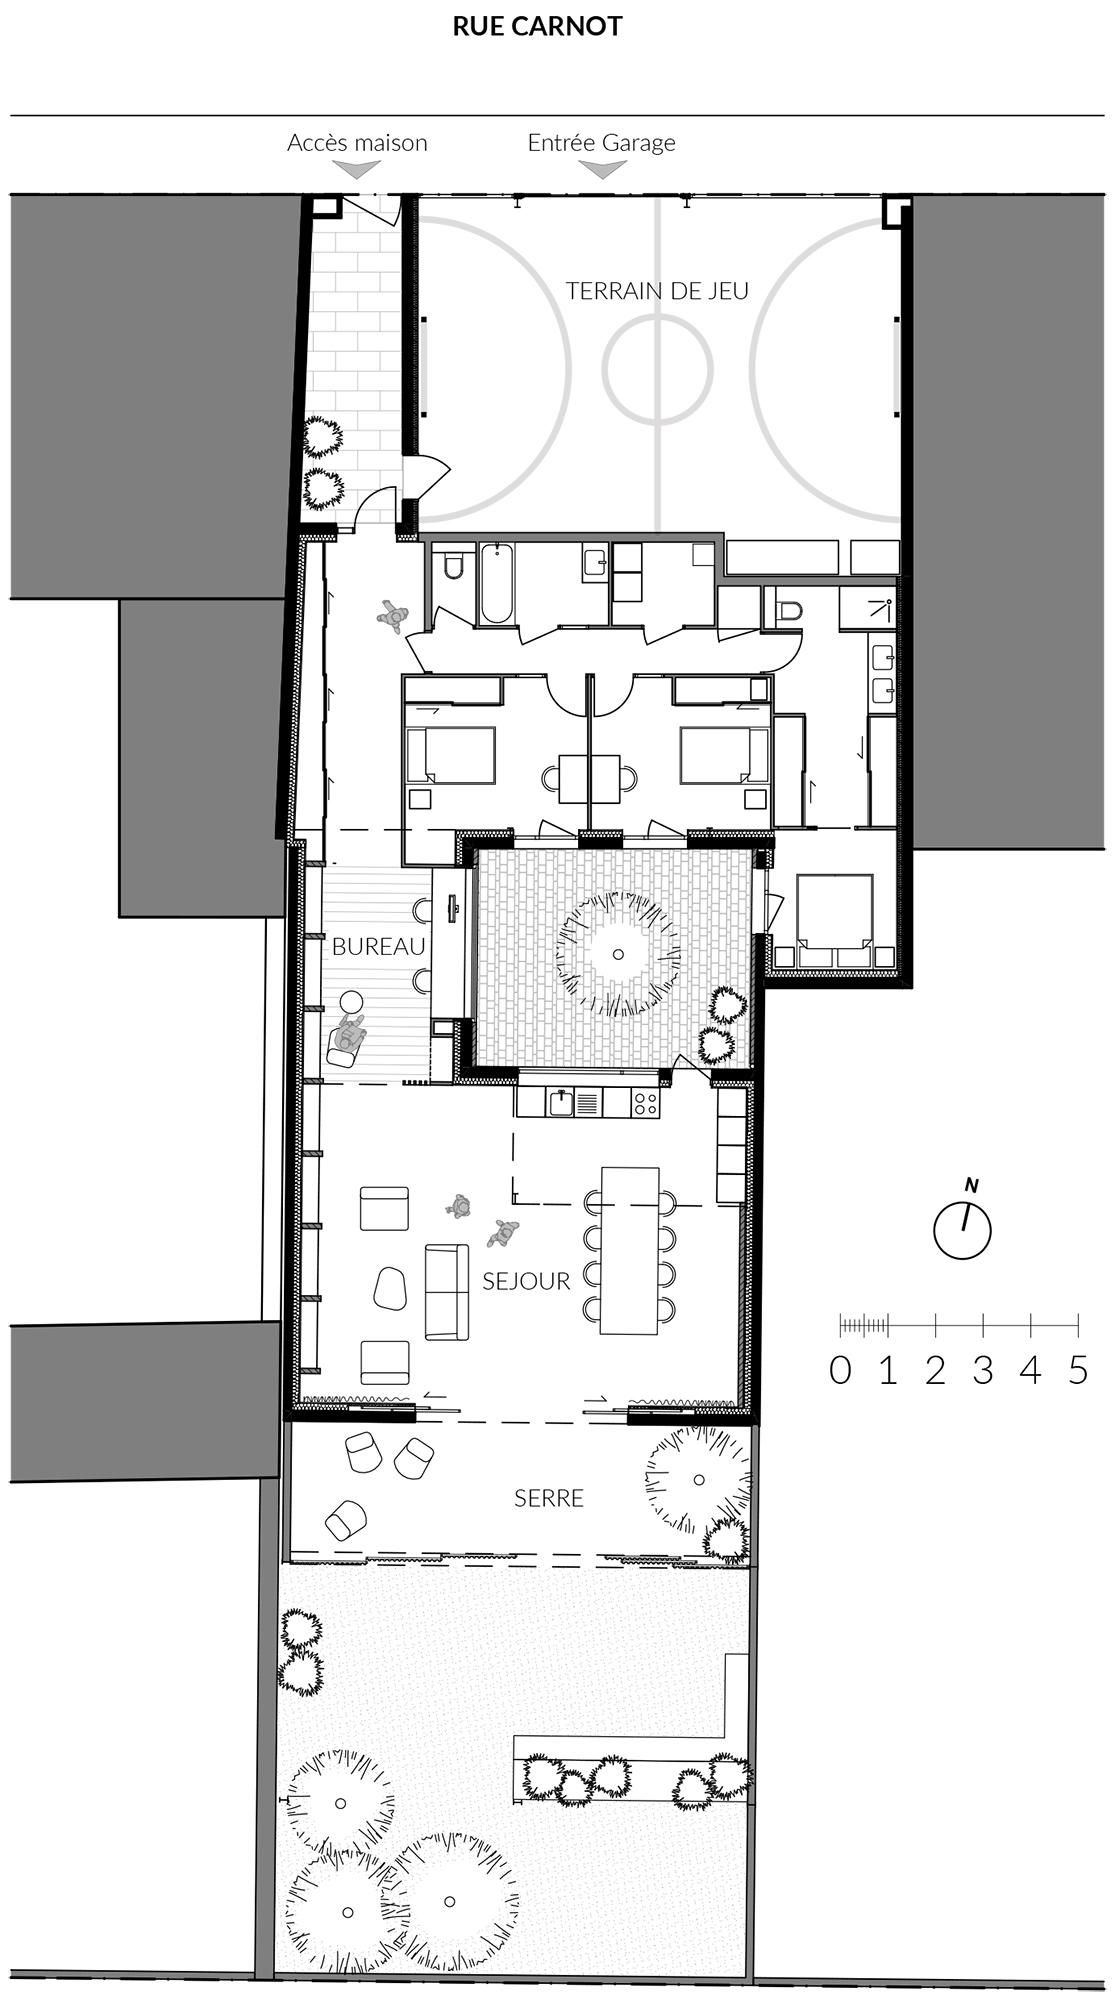 16 Maison Plan Trapeze Good Company How To Plan Floor Plans